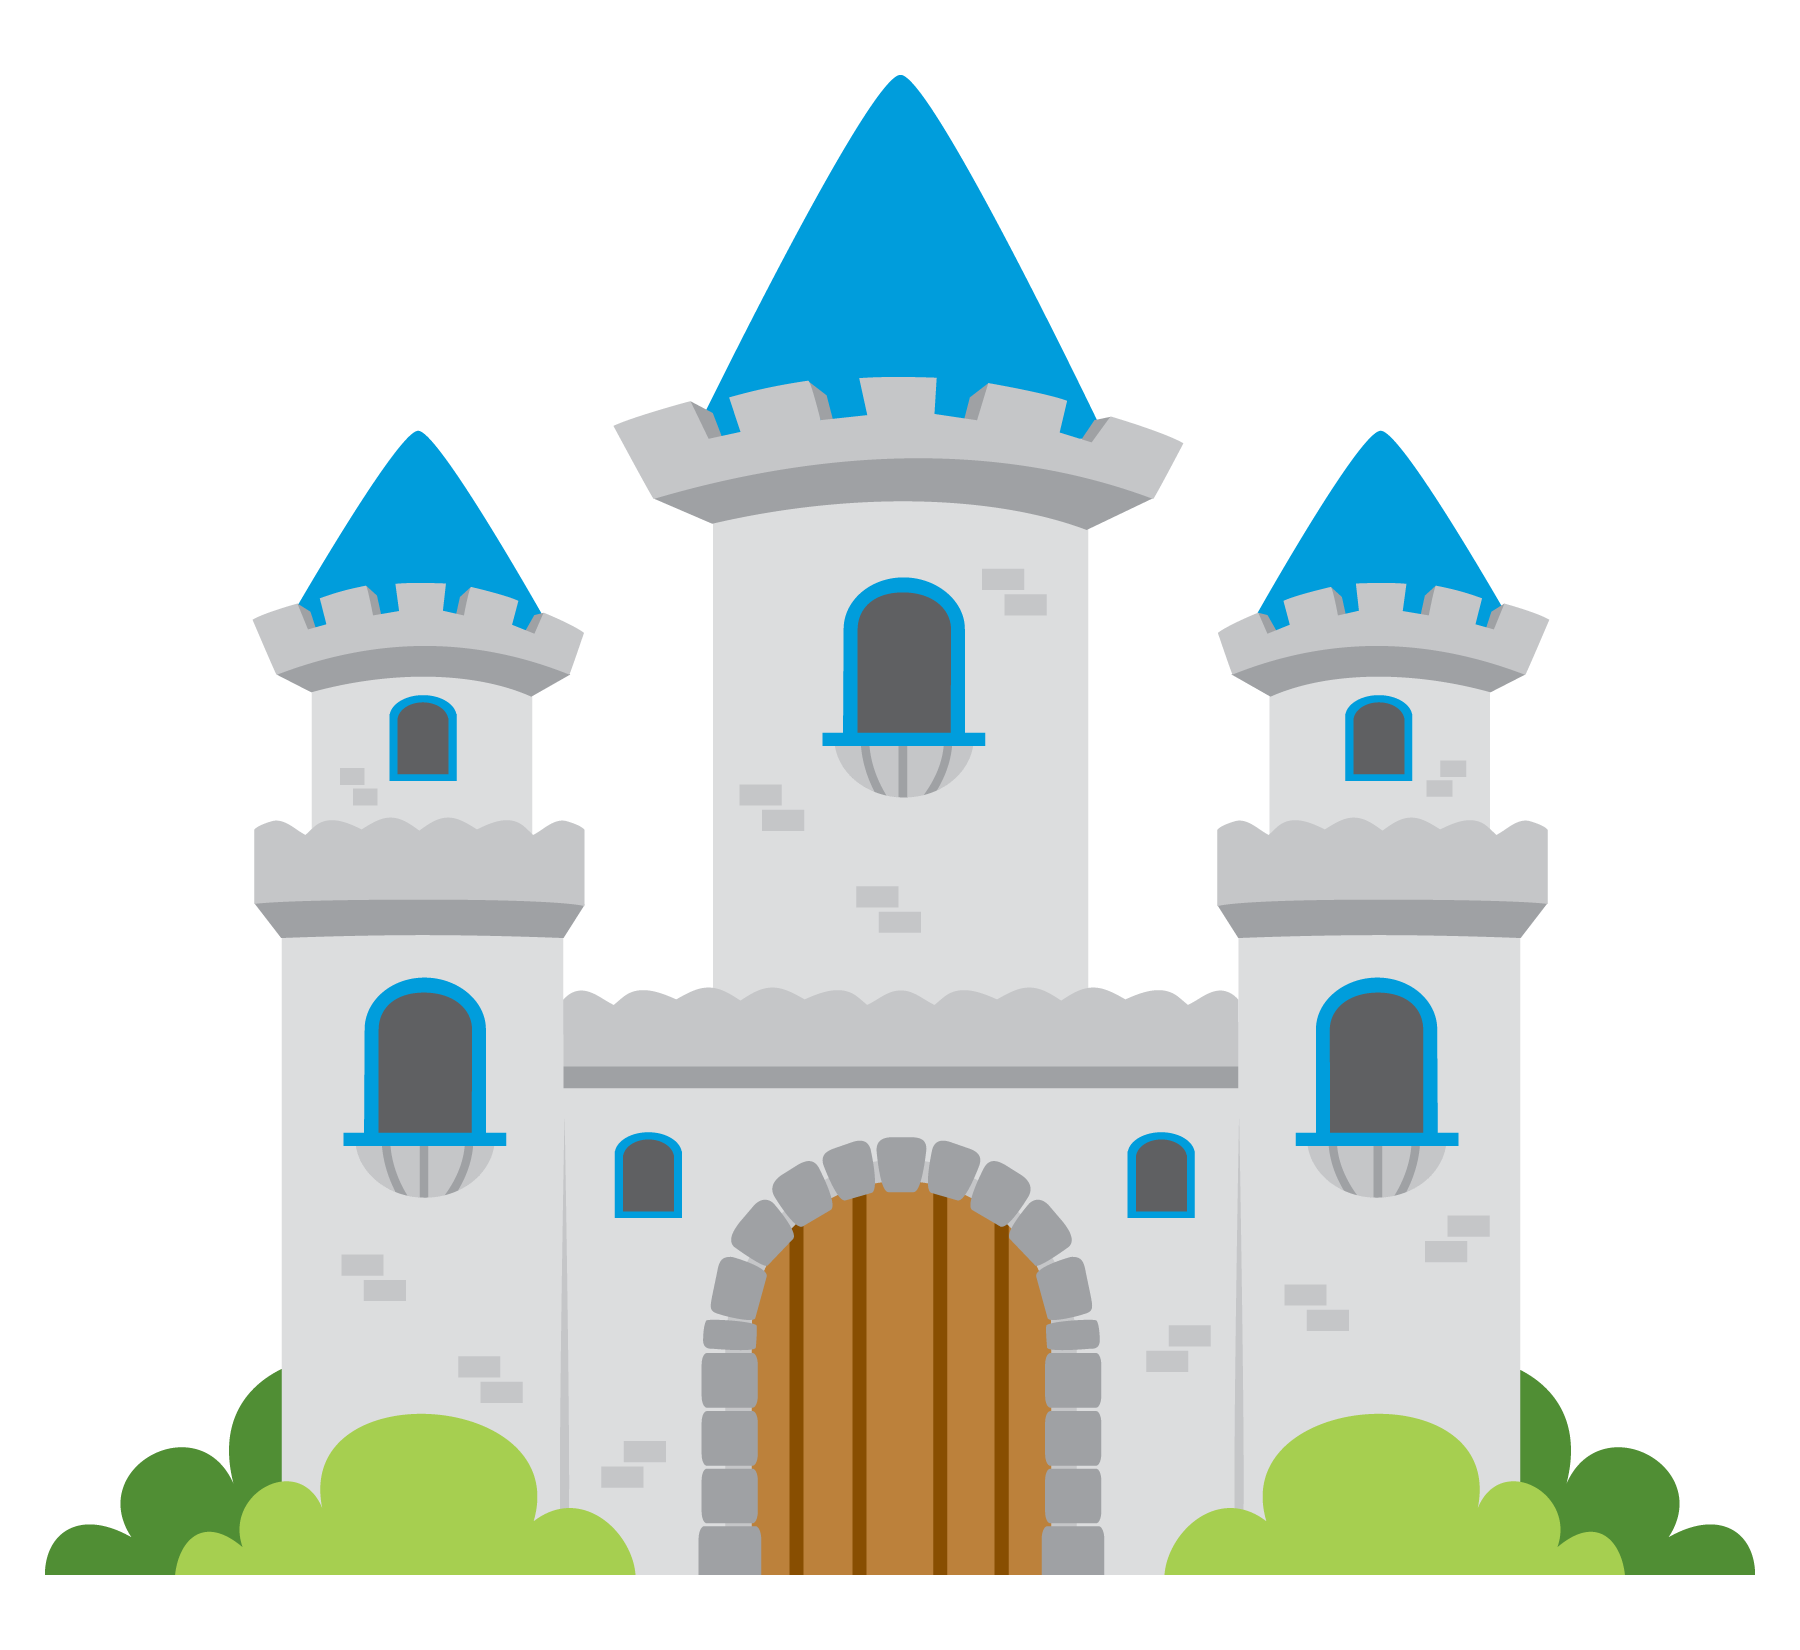 Castle clipart fairytale castle. Fairy tale clip art